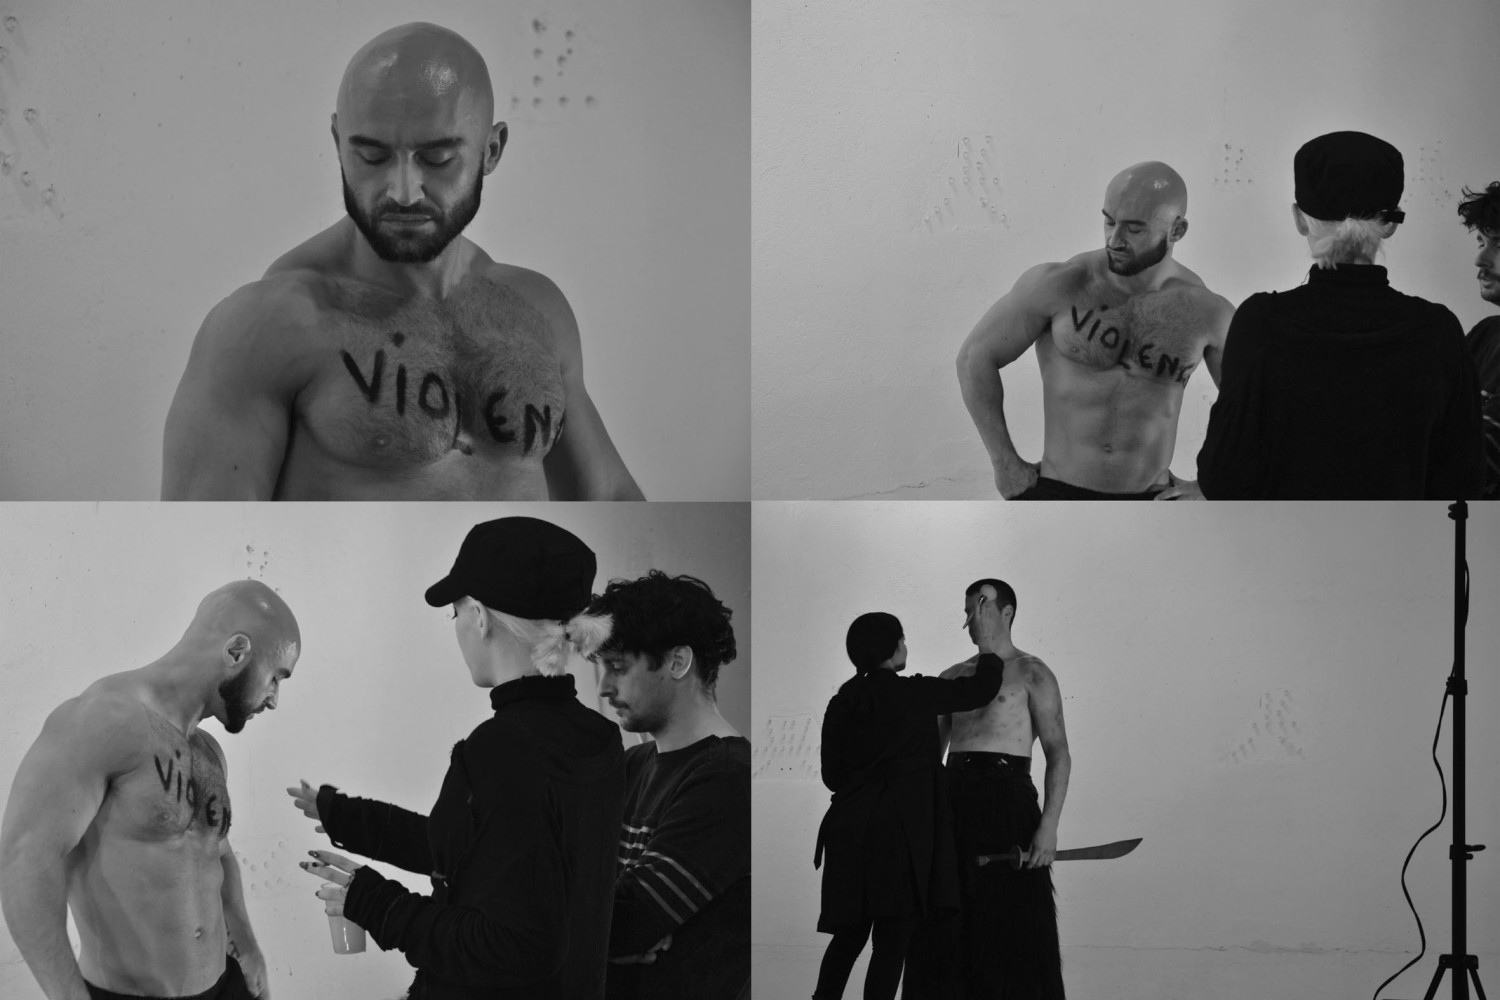 VIOLENCE VIDEO BACKSTAGE